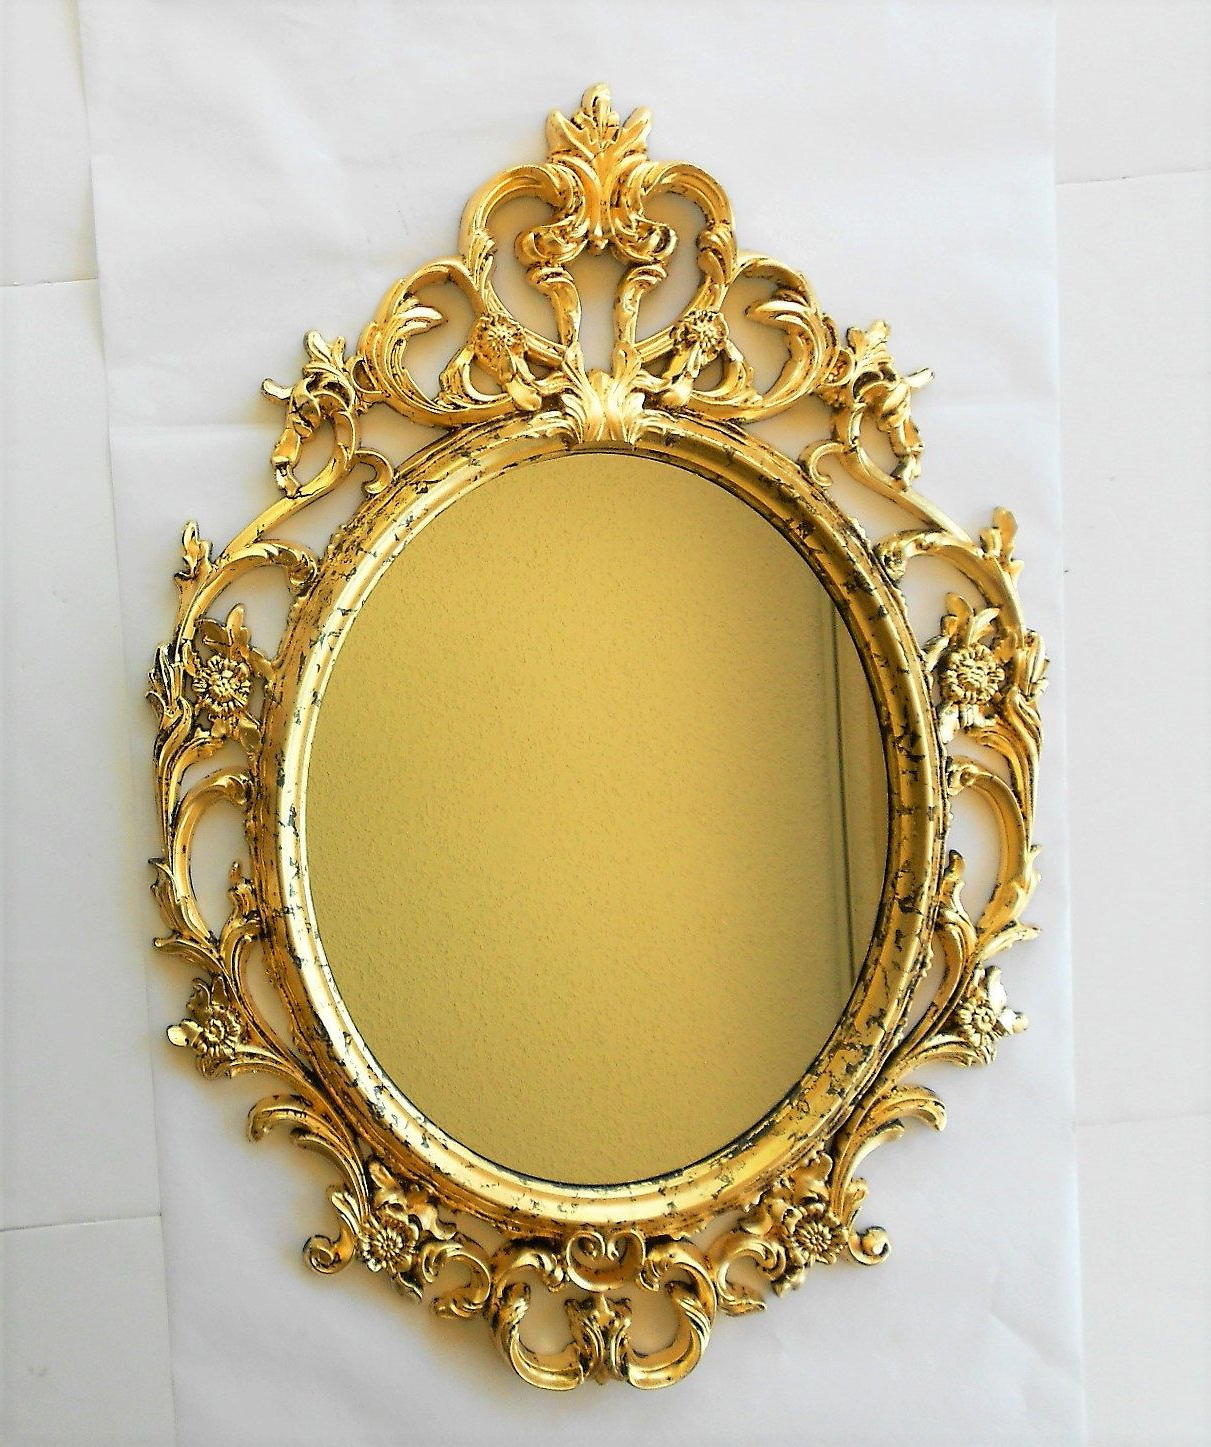 """33.5"""" H, Mirror Gold, Gold Frame, Oval Mirror, Large Oval Throughout Best And Newest Gold Framed Wall Mirrors (Gallery 16 of 20)"""